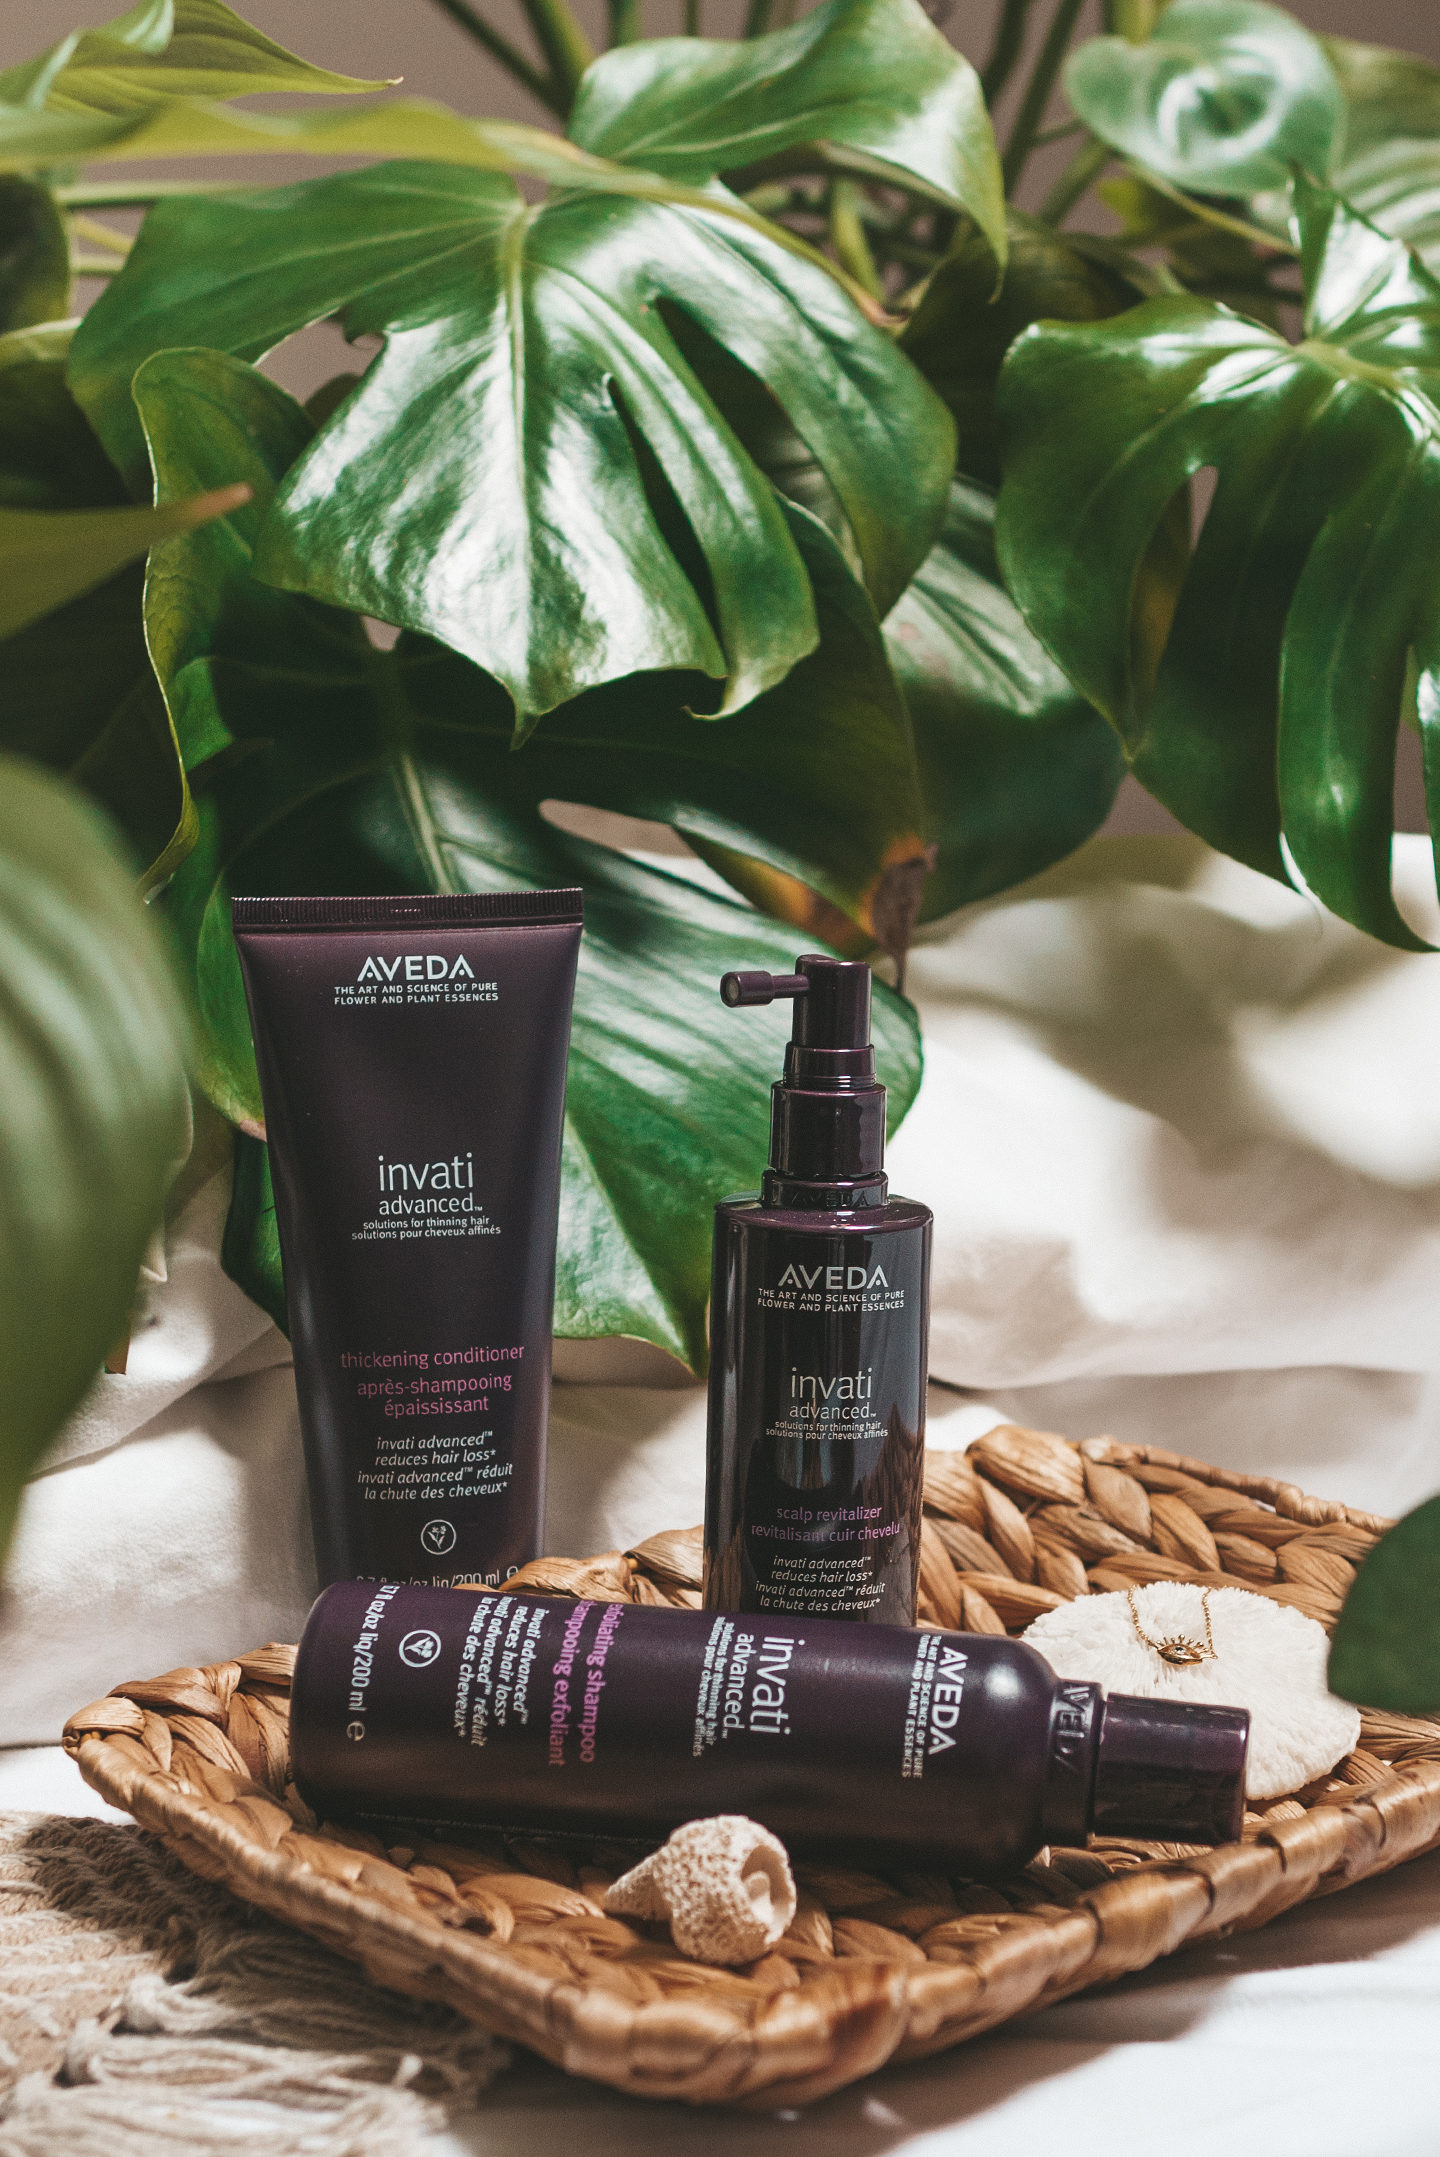 Invati Advanced Aveda